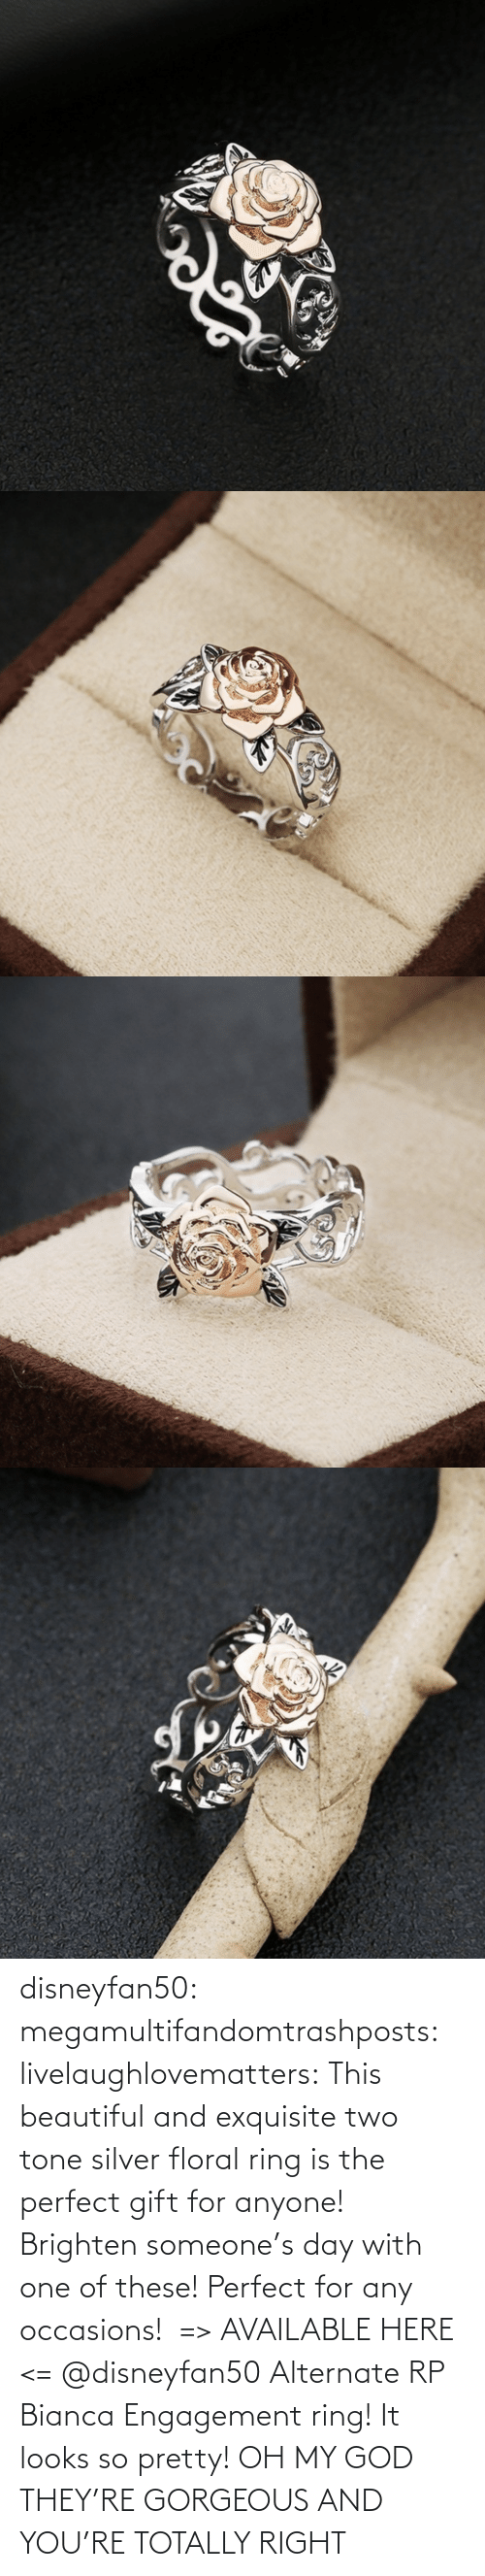 beautiful: disneyfan50: megamultifandomtrashposts:  livelaughlovematters:  This beautiful and exquisite two tone silver floral ring is the perfect gift for anyone! Brighten someone's day with one of these! Perfect for any occasions!  => AVAILABLE HERE <=    @disneyfan50 Alternate RP Bianca Engagement ring! It looks so pretty!  OH MY GOD THEY'RE GORGEOUS AND YOU'RE TOTALLY RIGHT